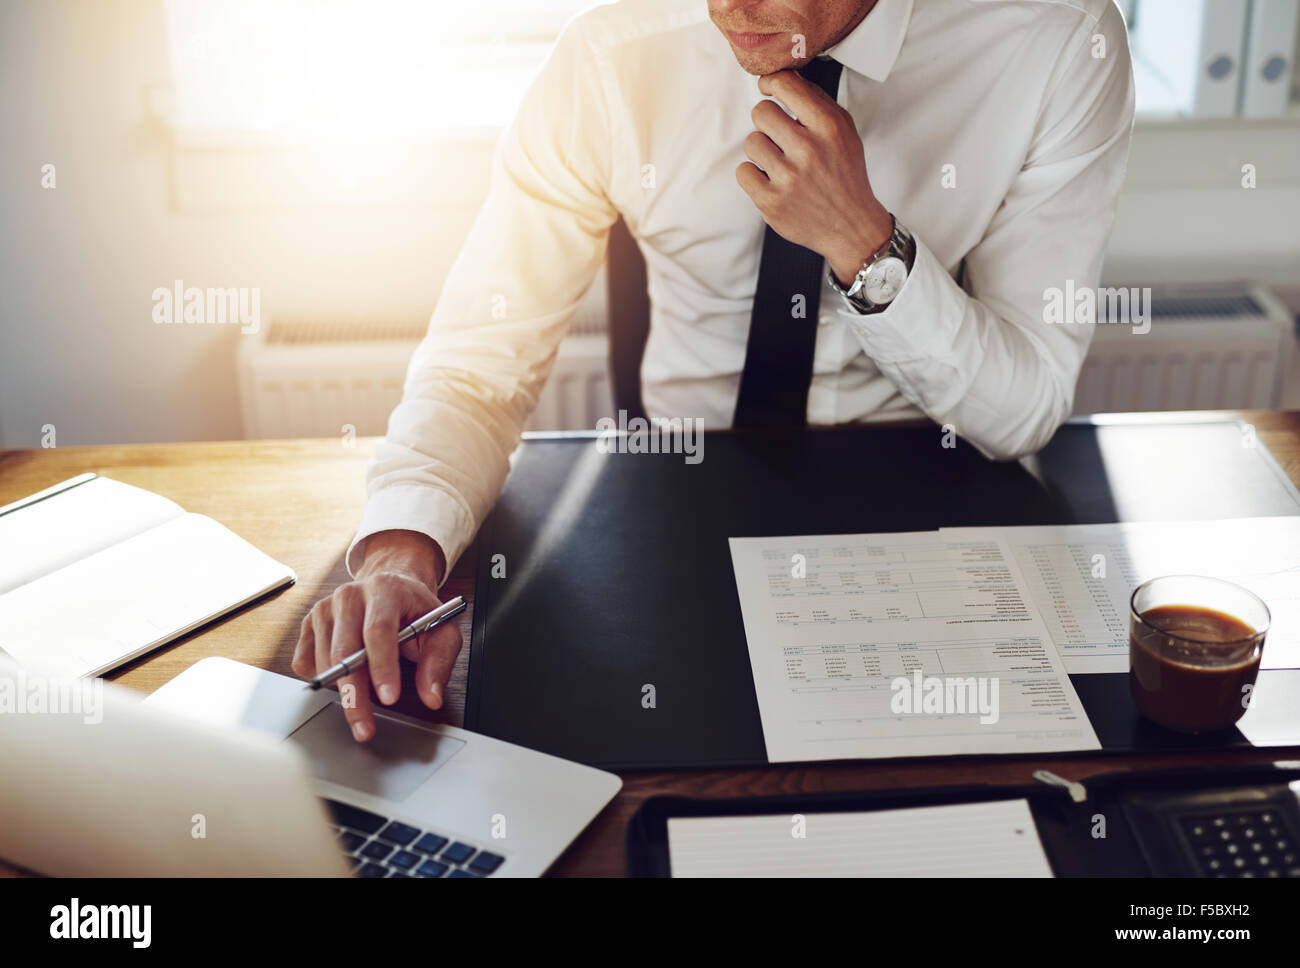 Business man working at office with laptop and documents on his desk, consultant lawyer concept - Stock Image